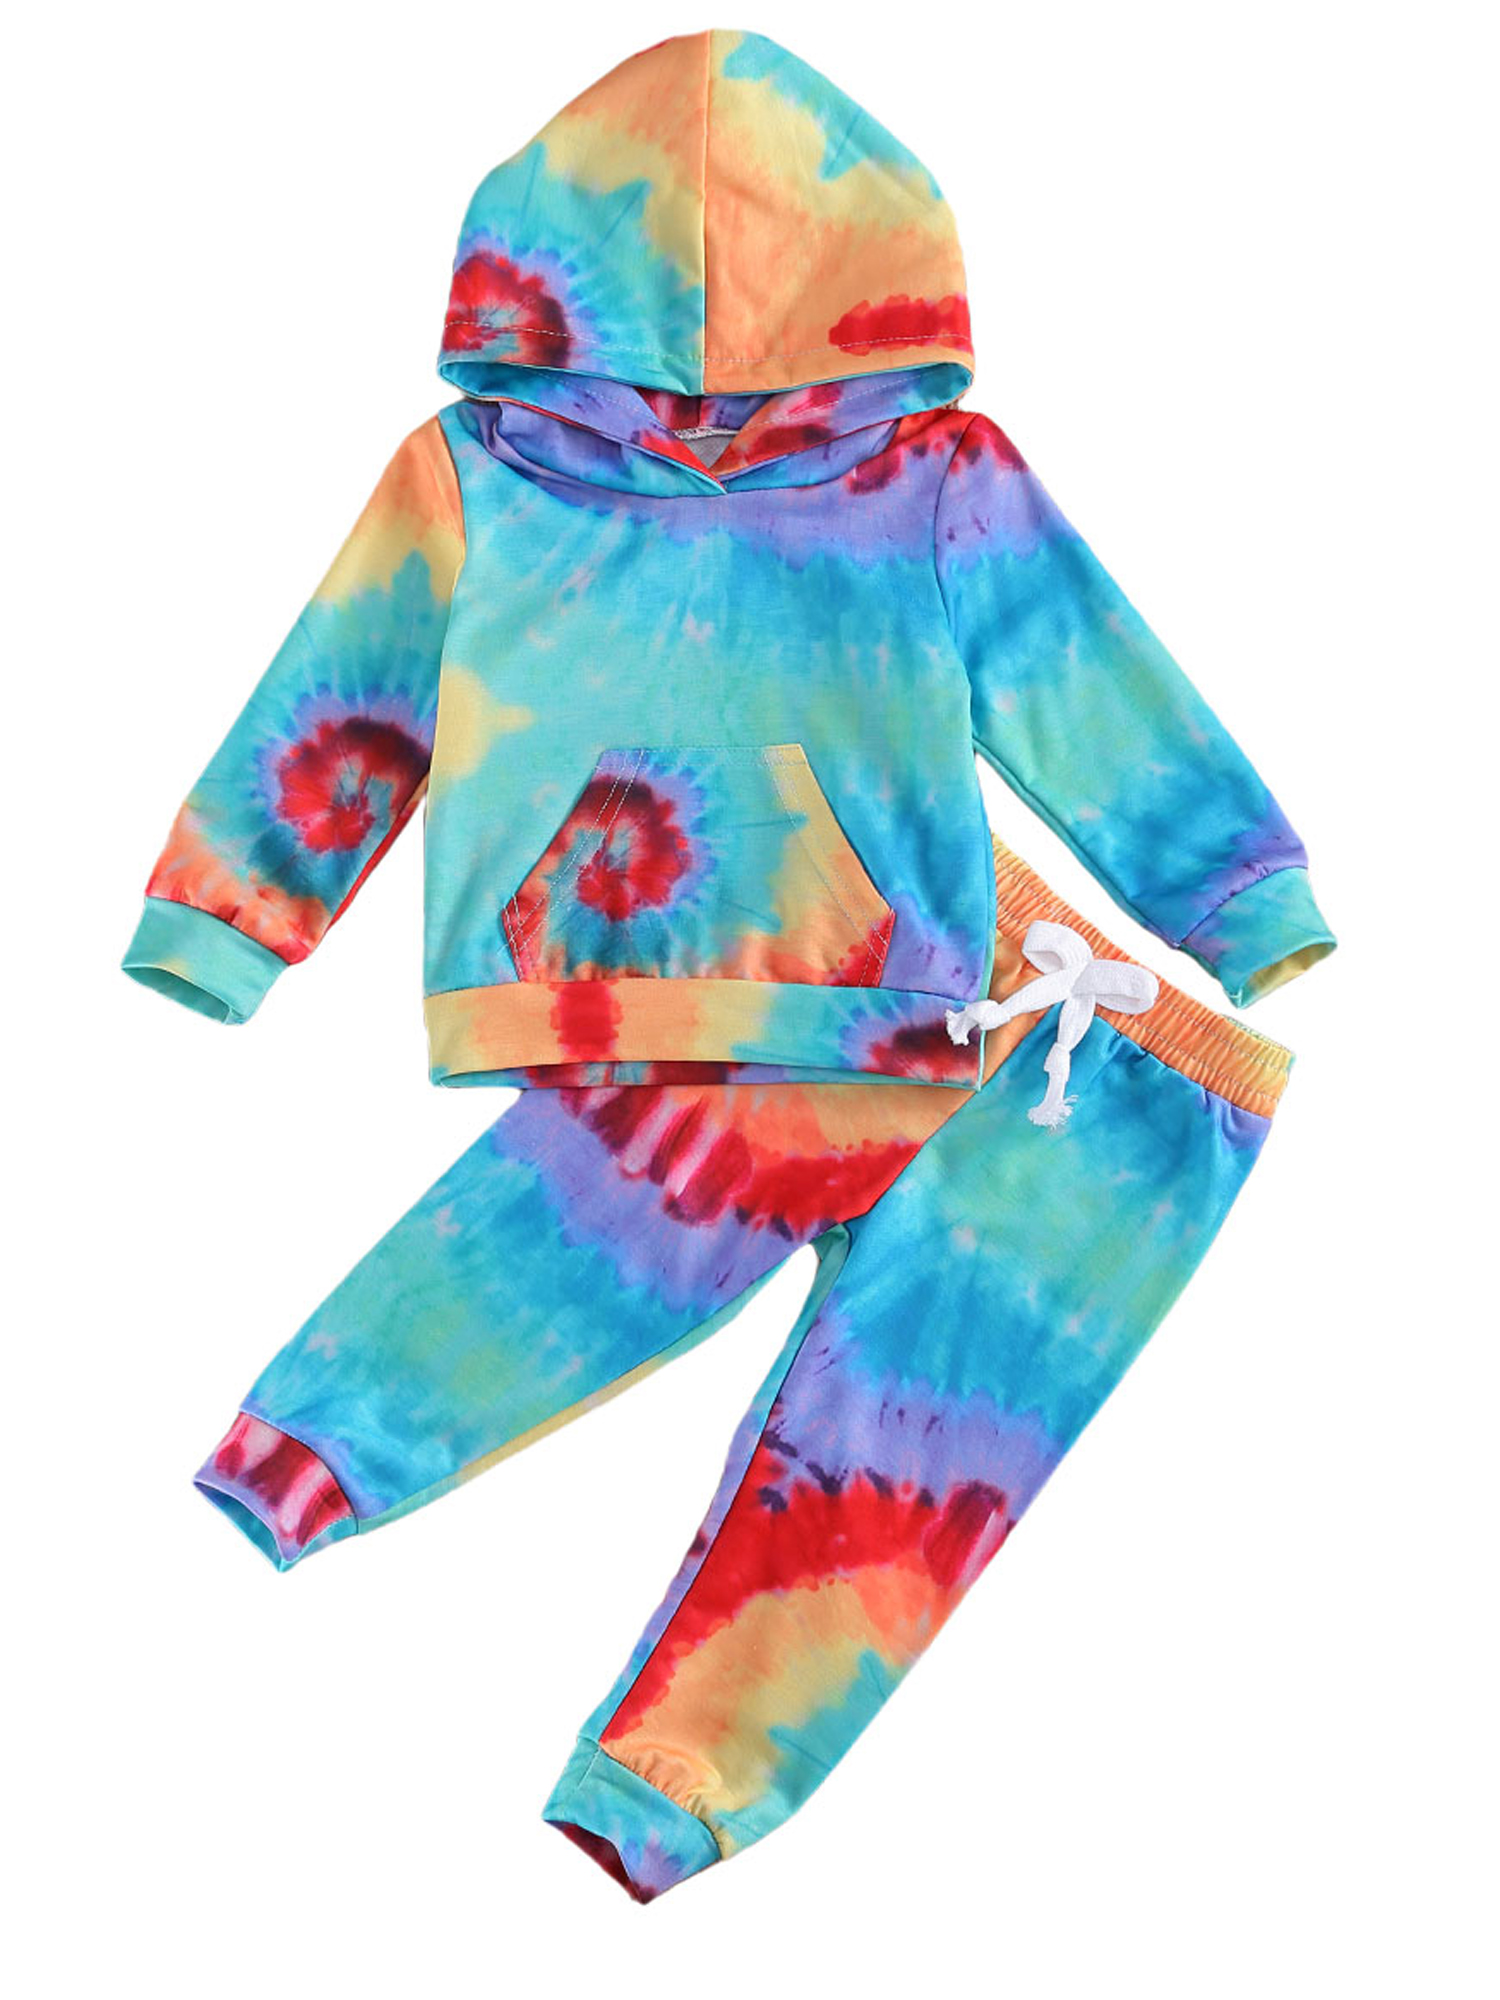 Toddler Baby Boys Girls Long Sleeve Hooded  Tracksuit Set Outfit Clothes Cute